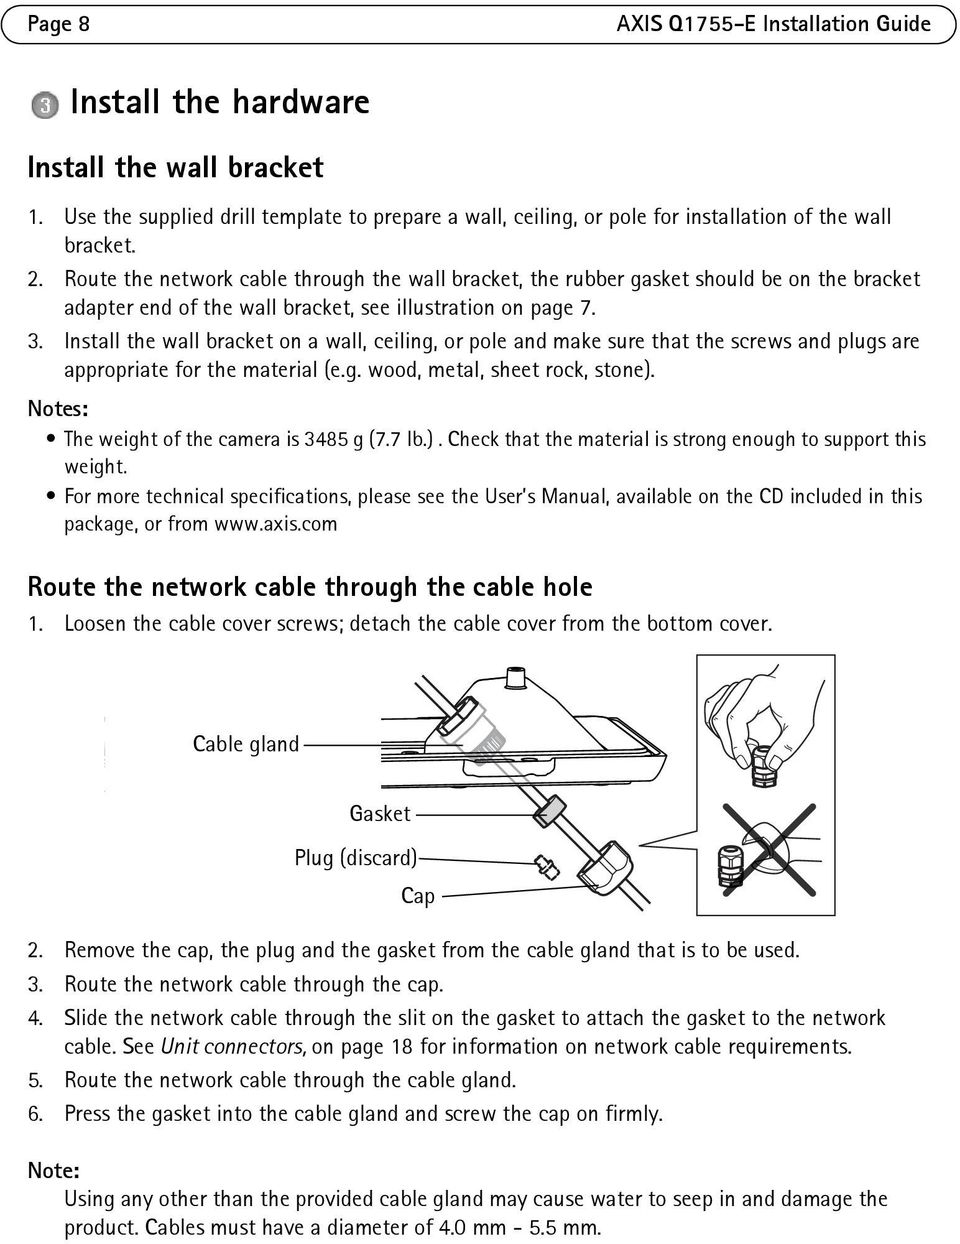 Install the wall bracket on a wall, ceiling, or pole and make sure that the screws and plugs are appropriate for the material (e.g. wood, metal, sheet rock, stone).